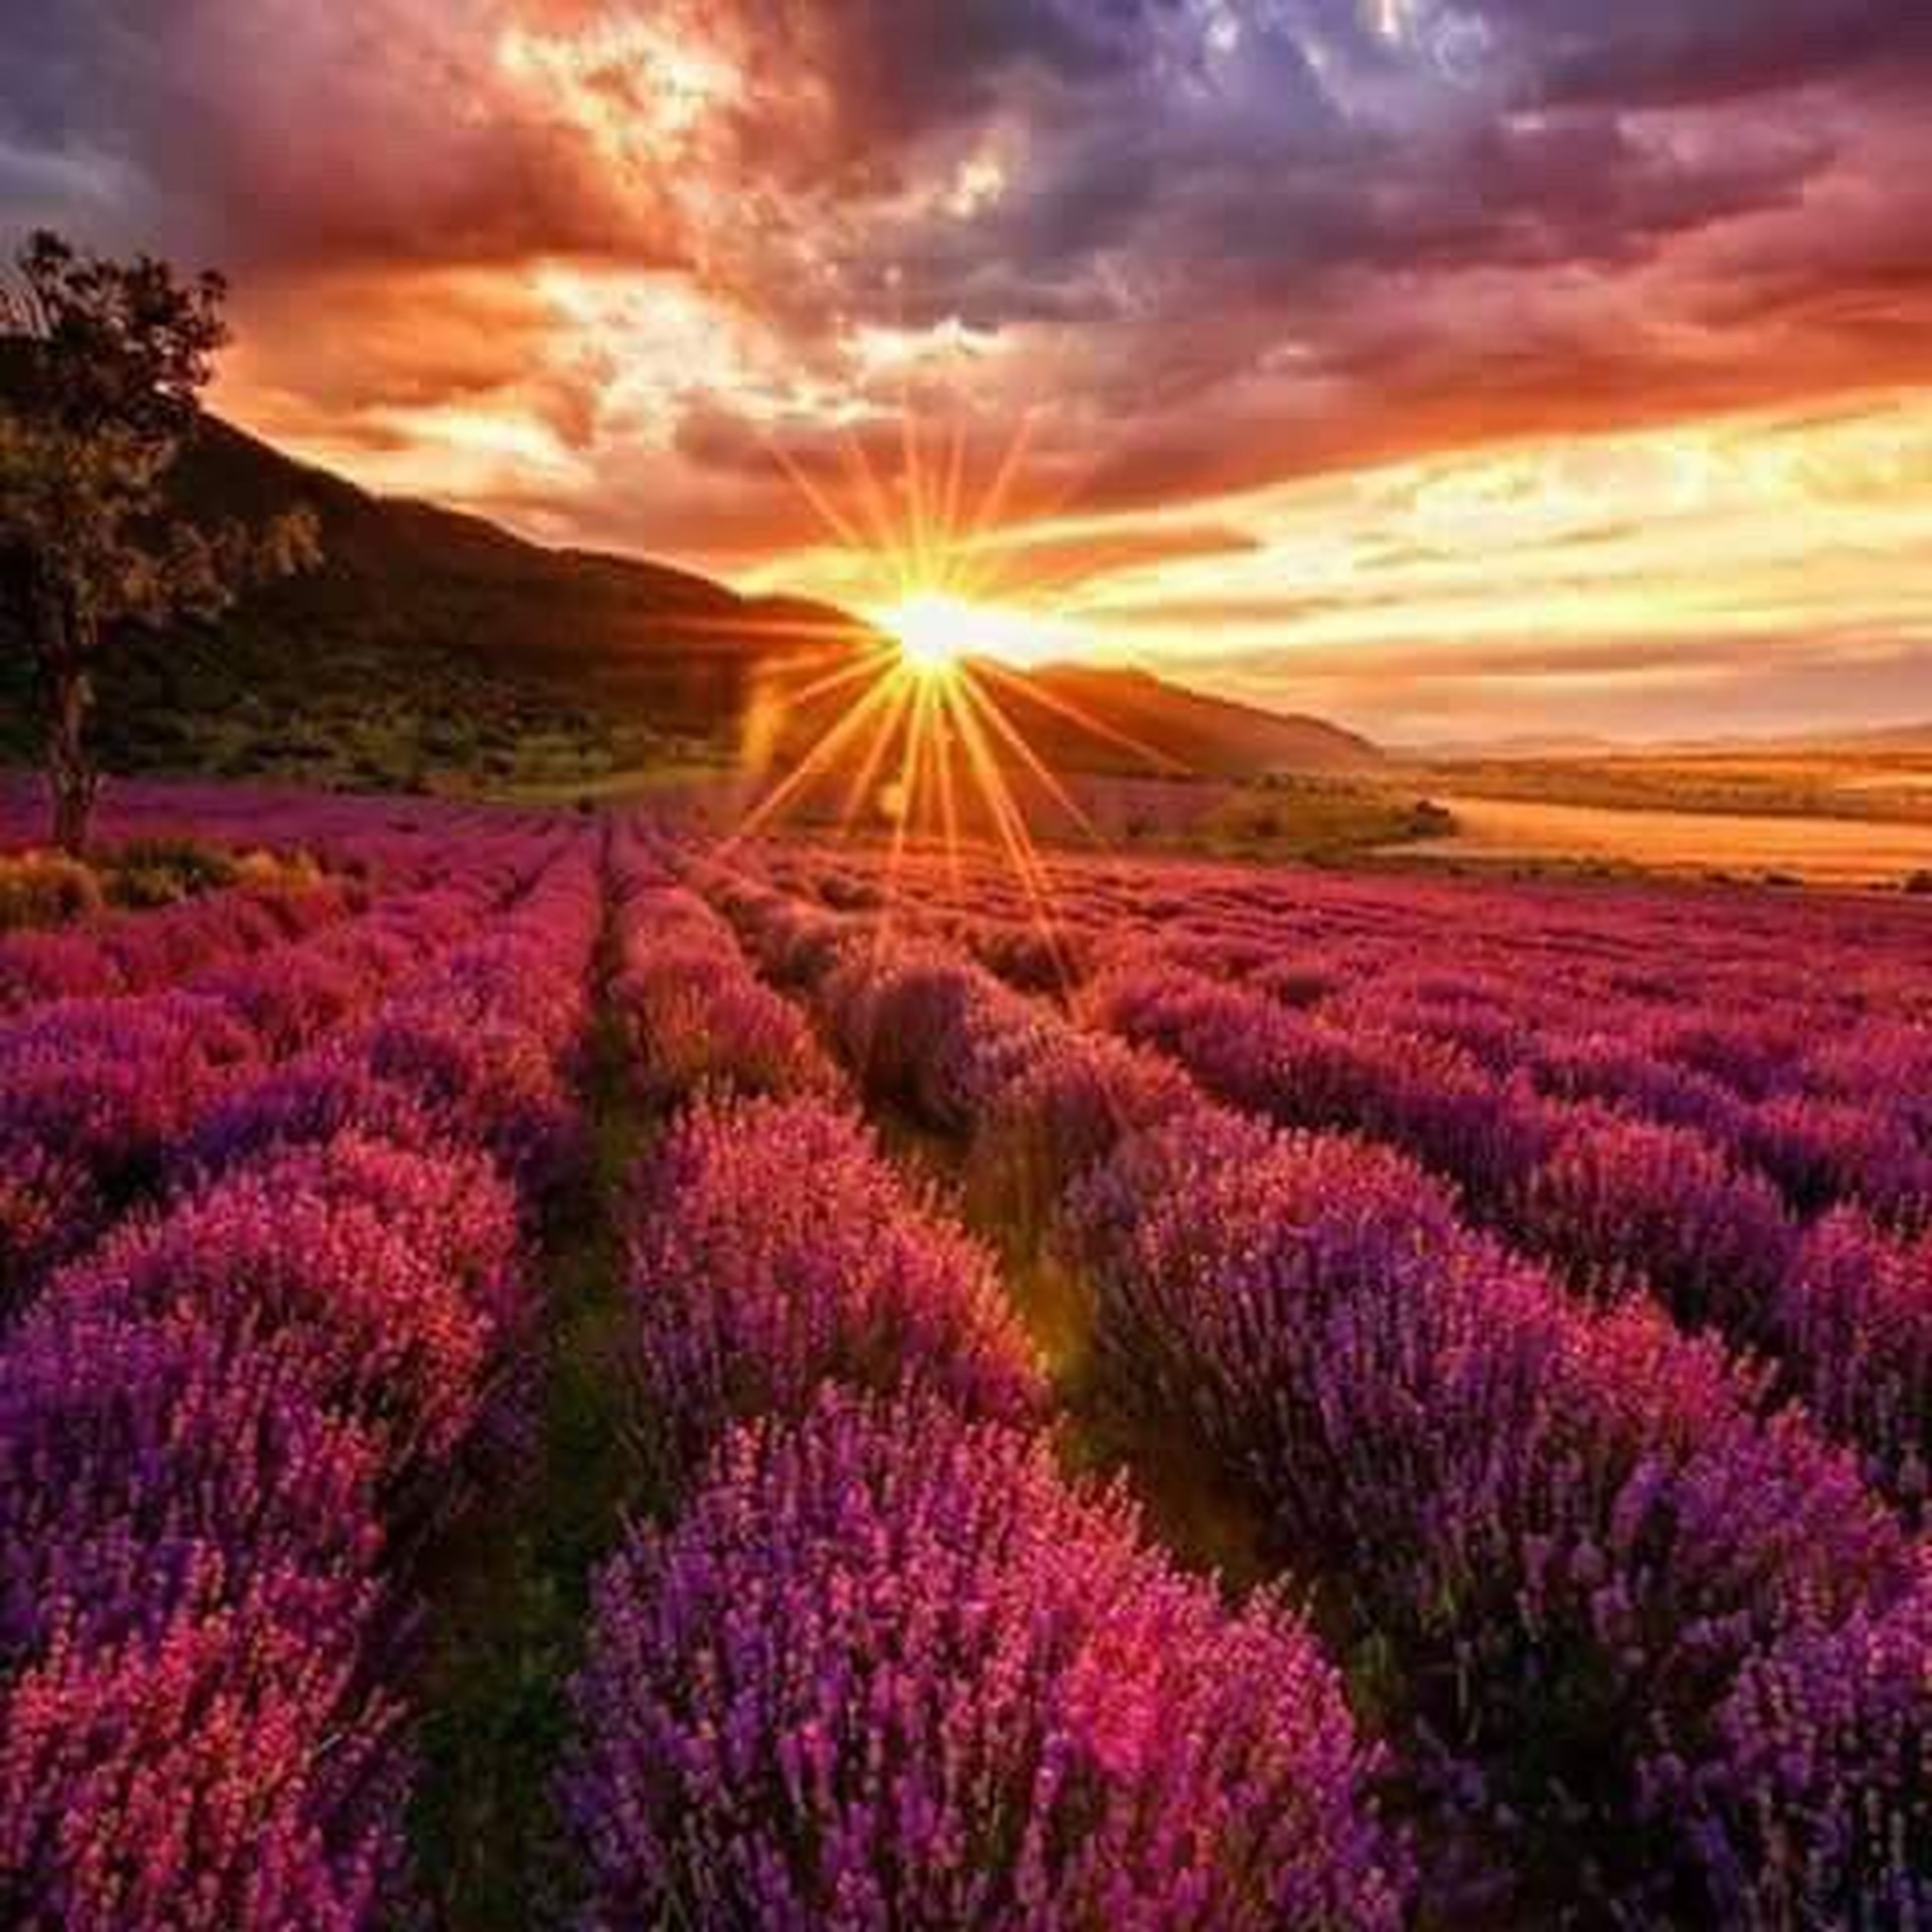 sunset, flower, purple, beauty in nature, dramatic sky, cloud - sky, pink color, scenics, nature, flower head, landscape, sunlight, plant, red, romantic sky, sun, sky, field, no people, outdoors, freshness, close-up